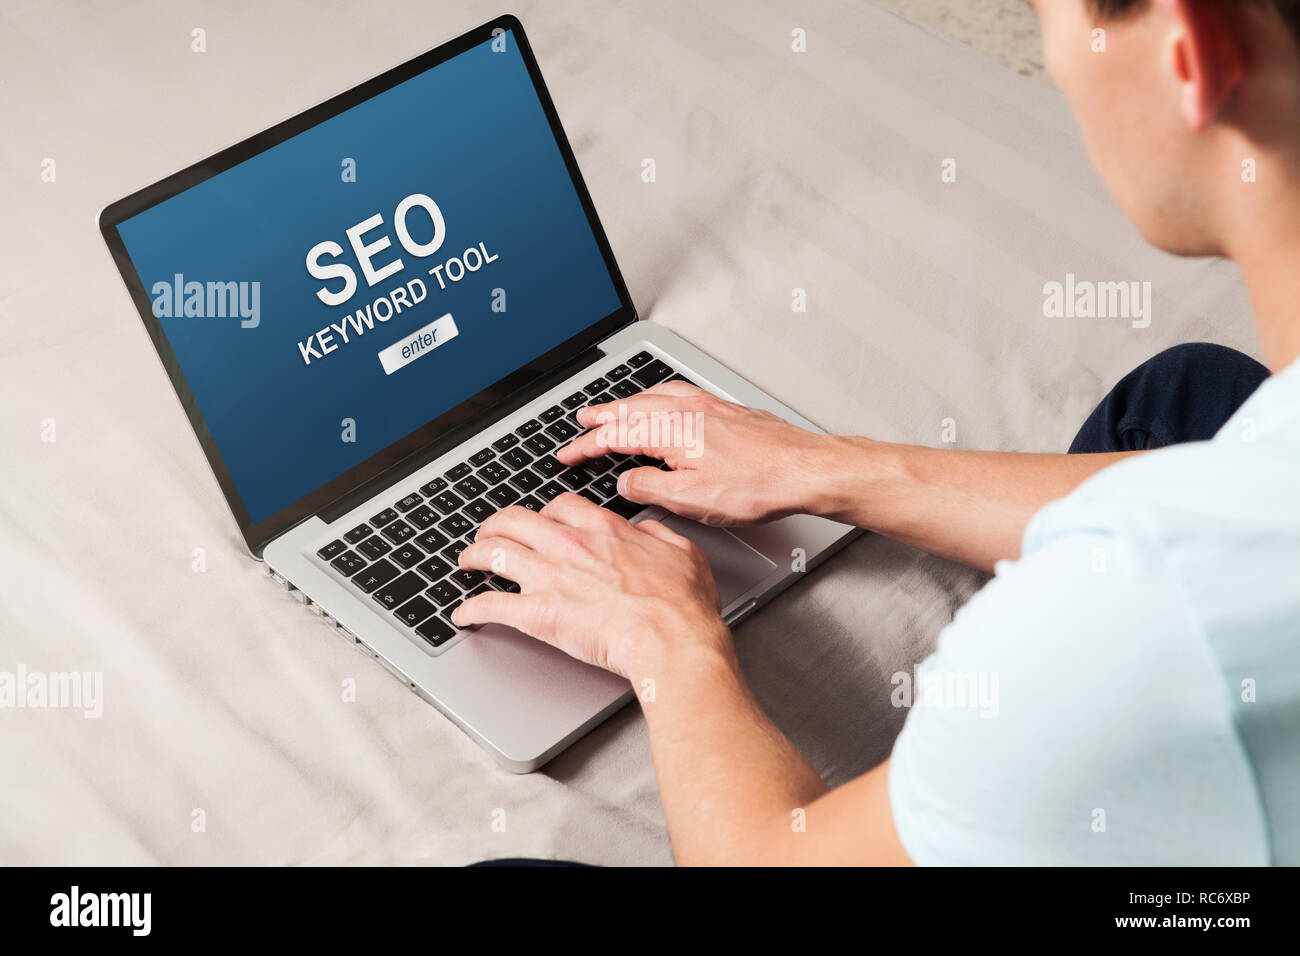 Man doing a SEO positioning in a website with a laptop computer. - Stock Image